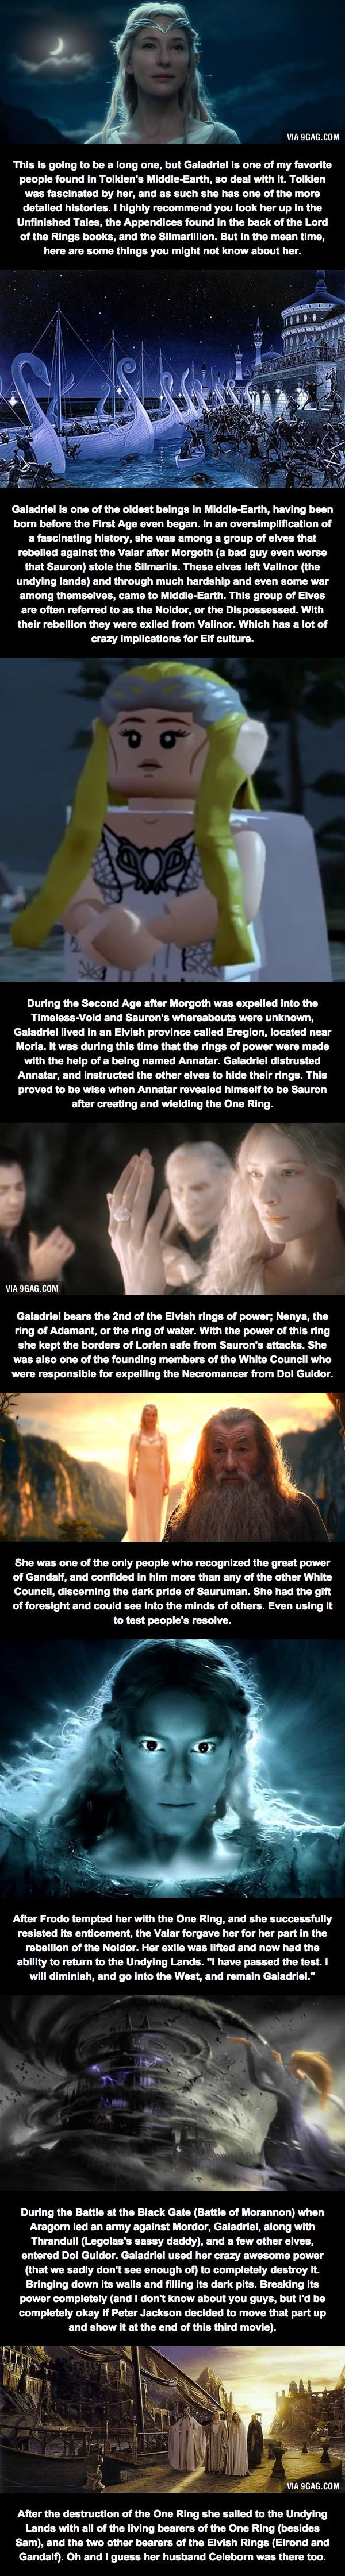 Relatively Unknown LoTR Facts (Part 3) - Galadriel the Lady of Light | MAYBE I SHOULD SHOW THIS TO THE PEOPLE THAT GIVE ME ODD LOOKS WHEN I SAY GALADRIEL IS [one of] MY FAVORITE CHARACTER[s].